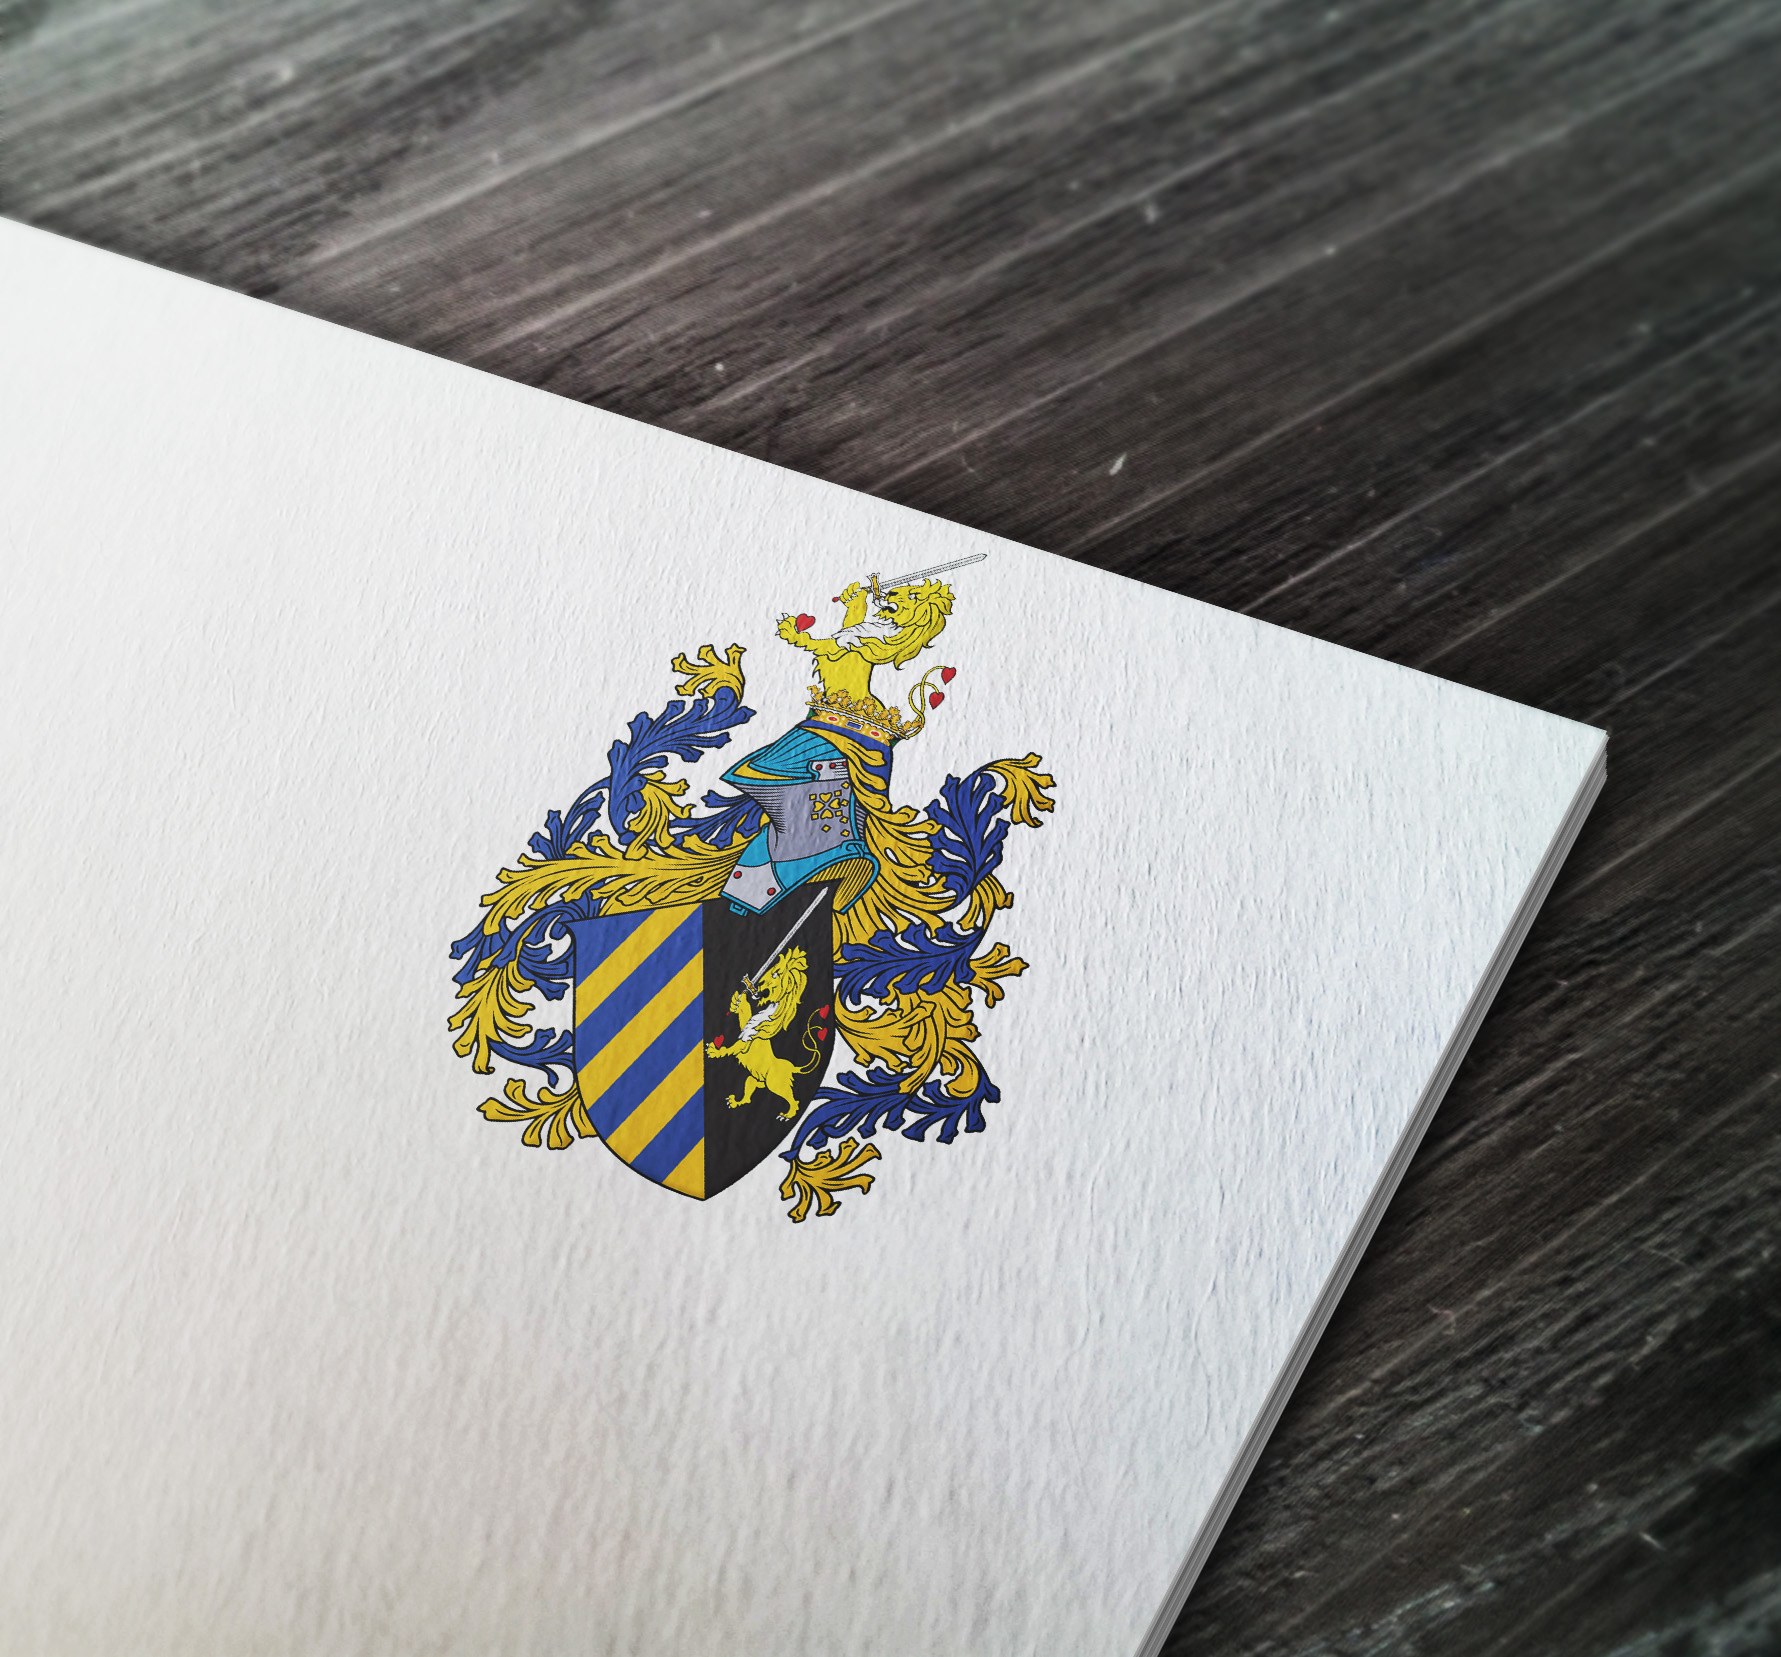 Coat of arms I designed for an engineer from the USA. Project based on 3 sources: a painting, a watercolor also printed and stained glass